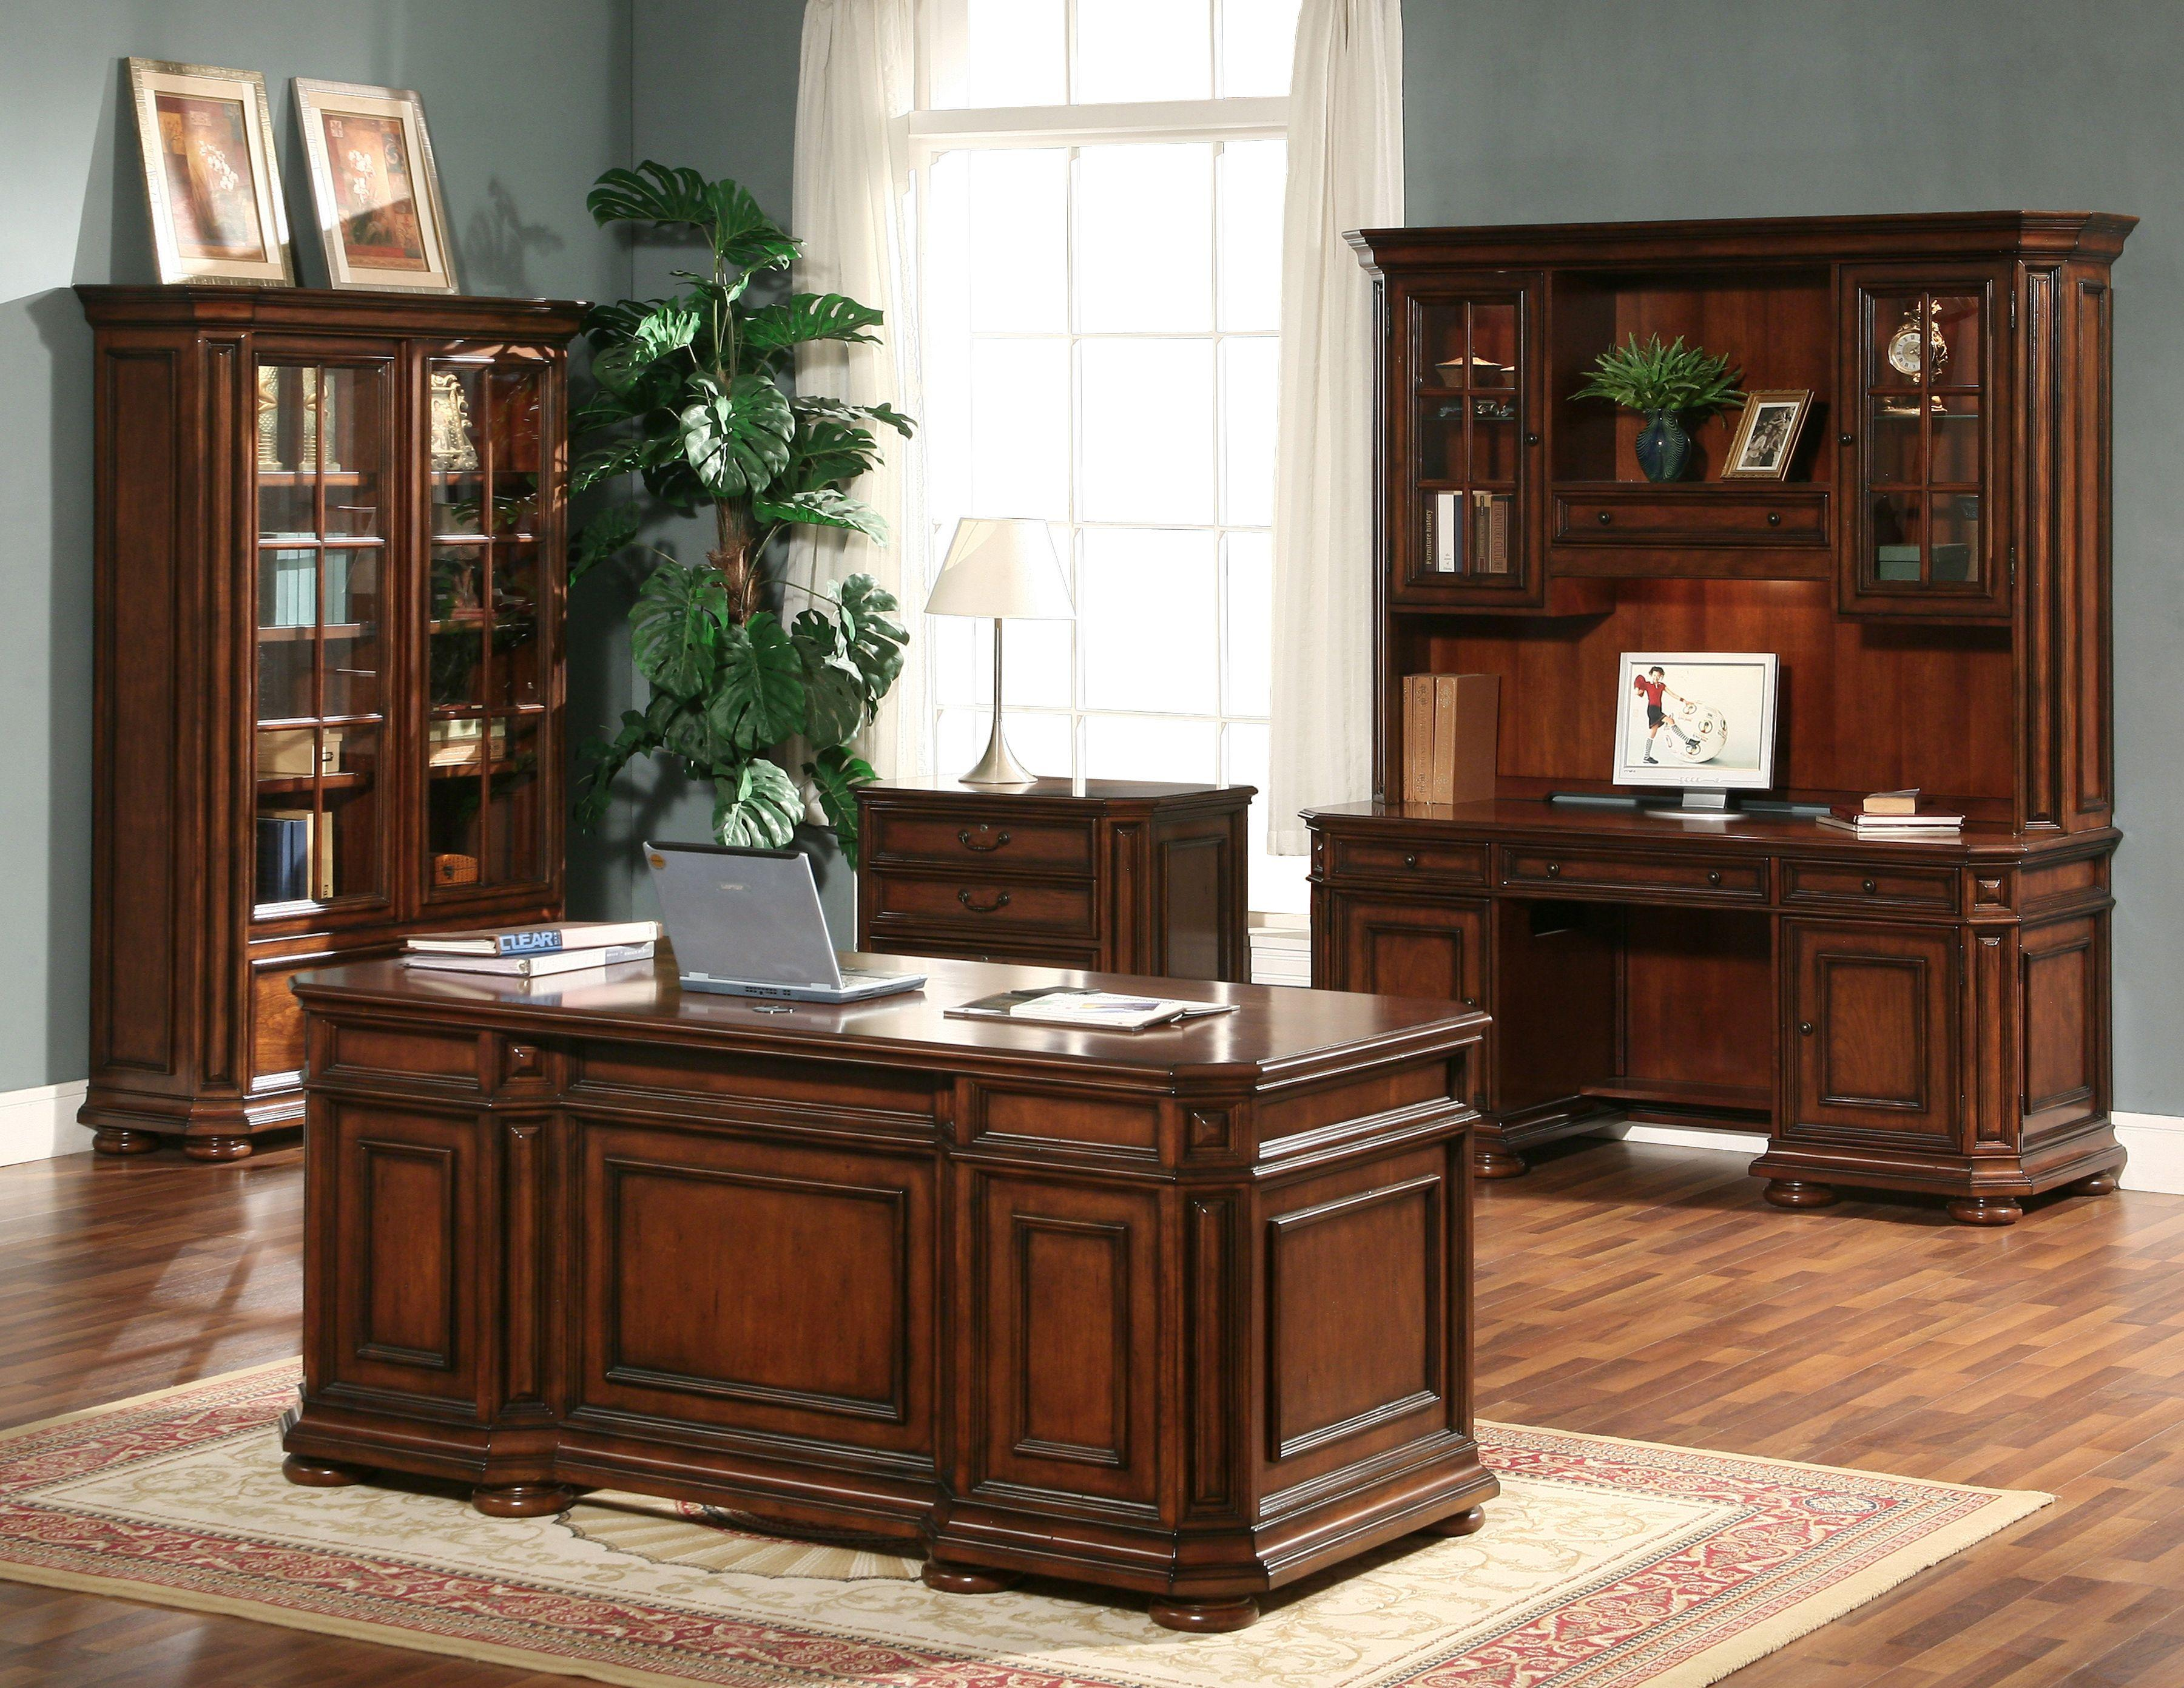 Executive desk office furniture - Riverside Furniture Cantata Executive Desk Chair With Casters Wayside Furniture Executive Desk Chair